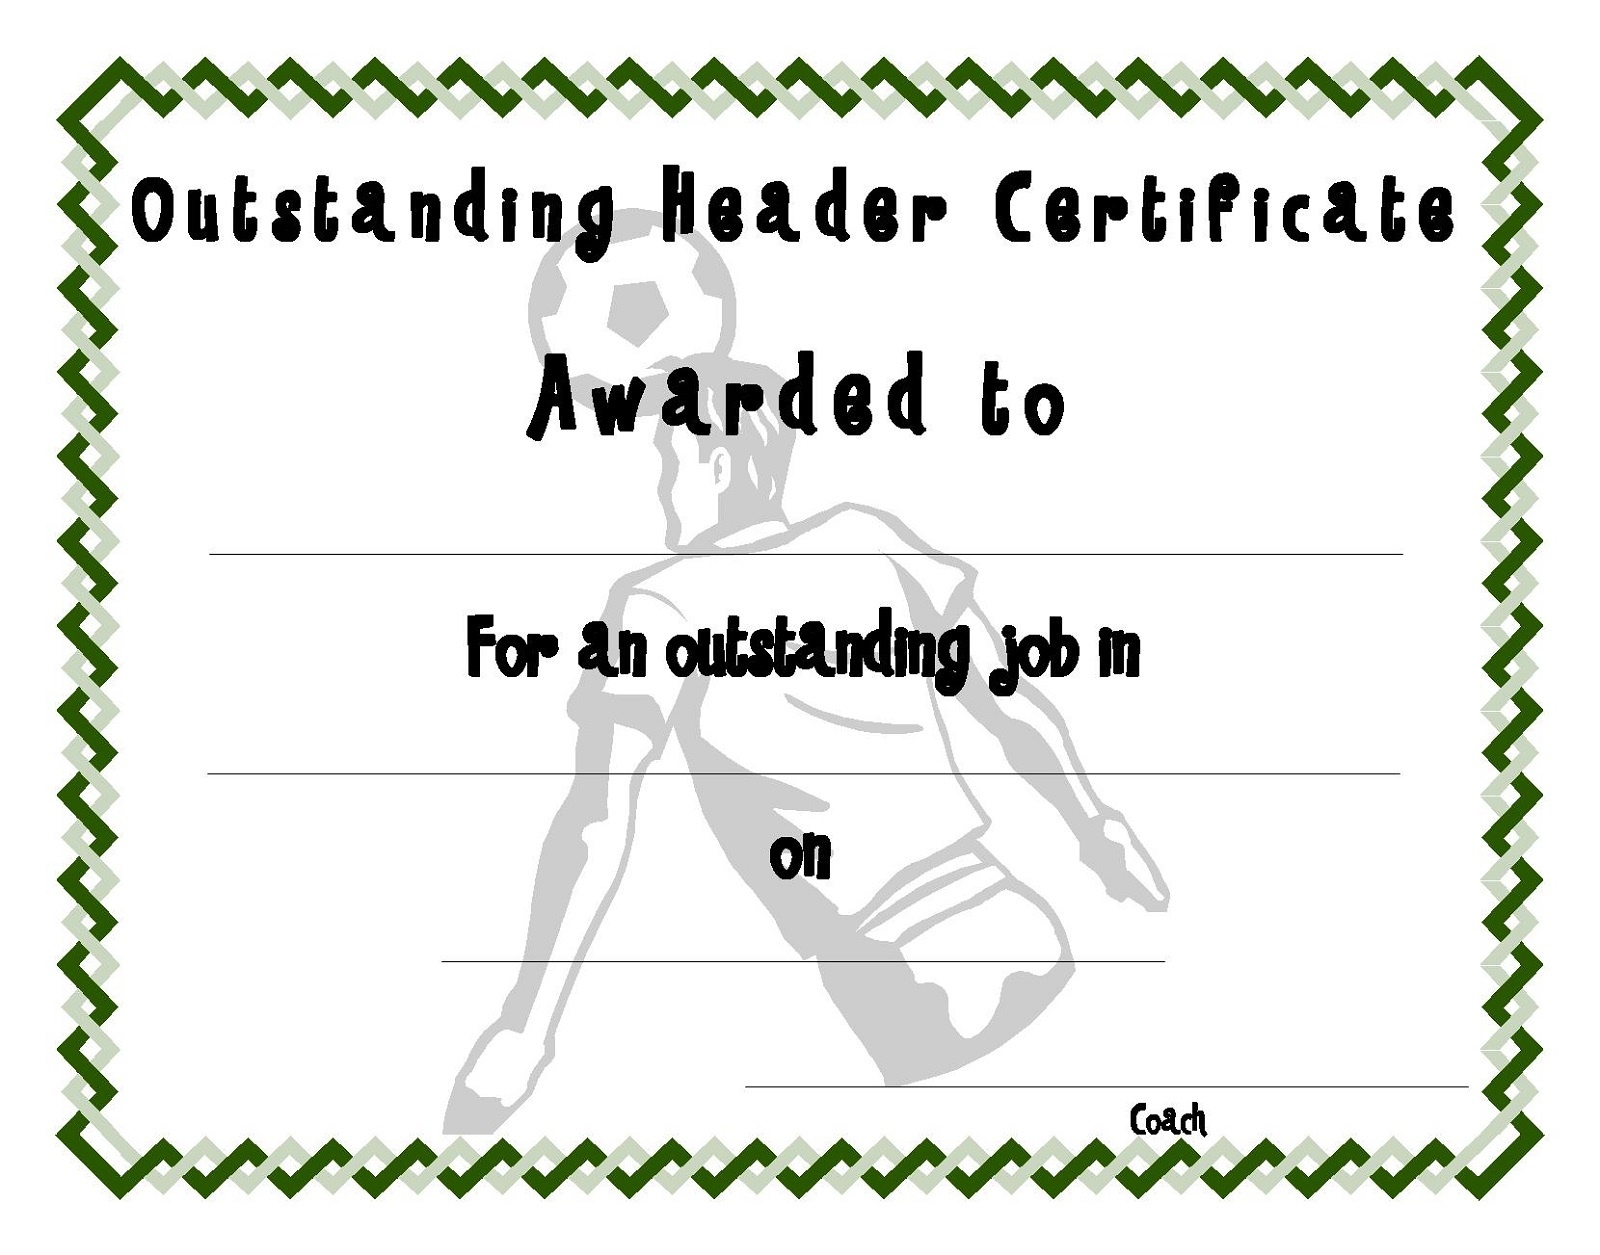 Soccer Certificate Templates | Activity Shelter - Free Printable Soccer Certificate Templates